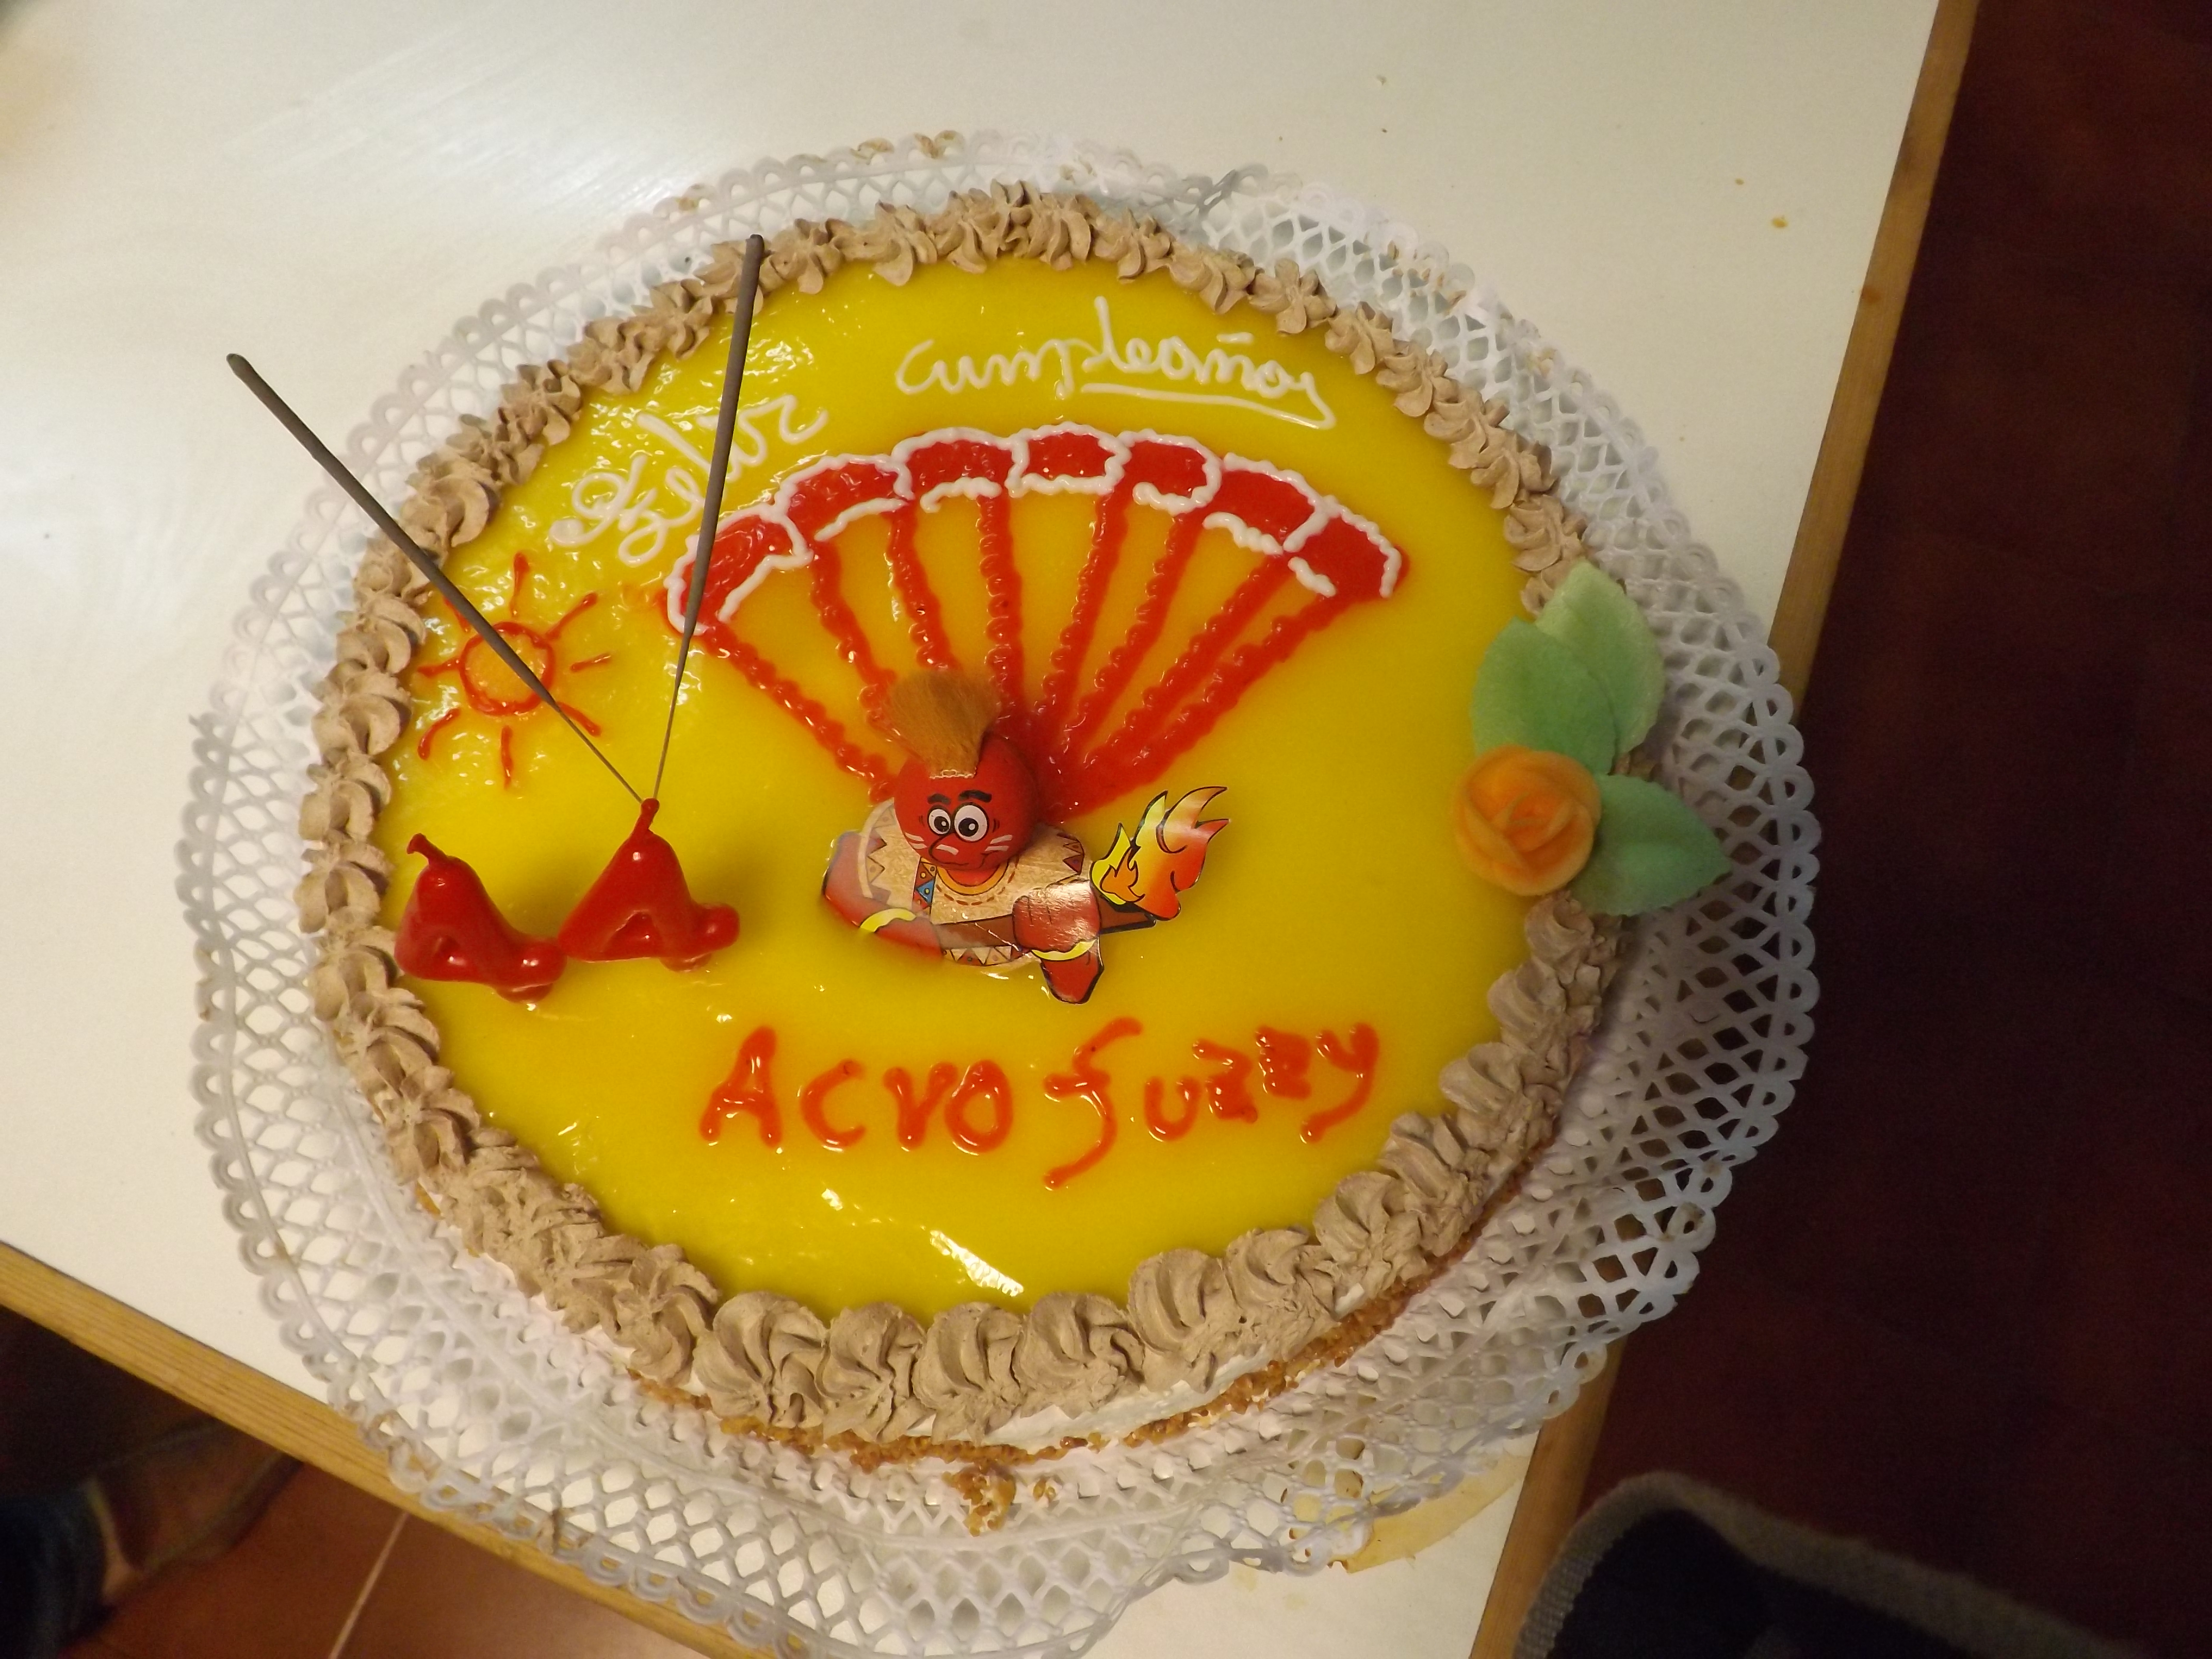 HAPPY BIRTHDAY, ACROFUZZYS!